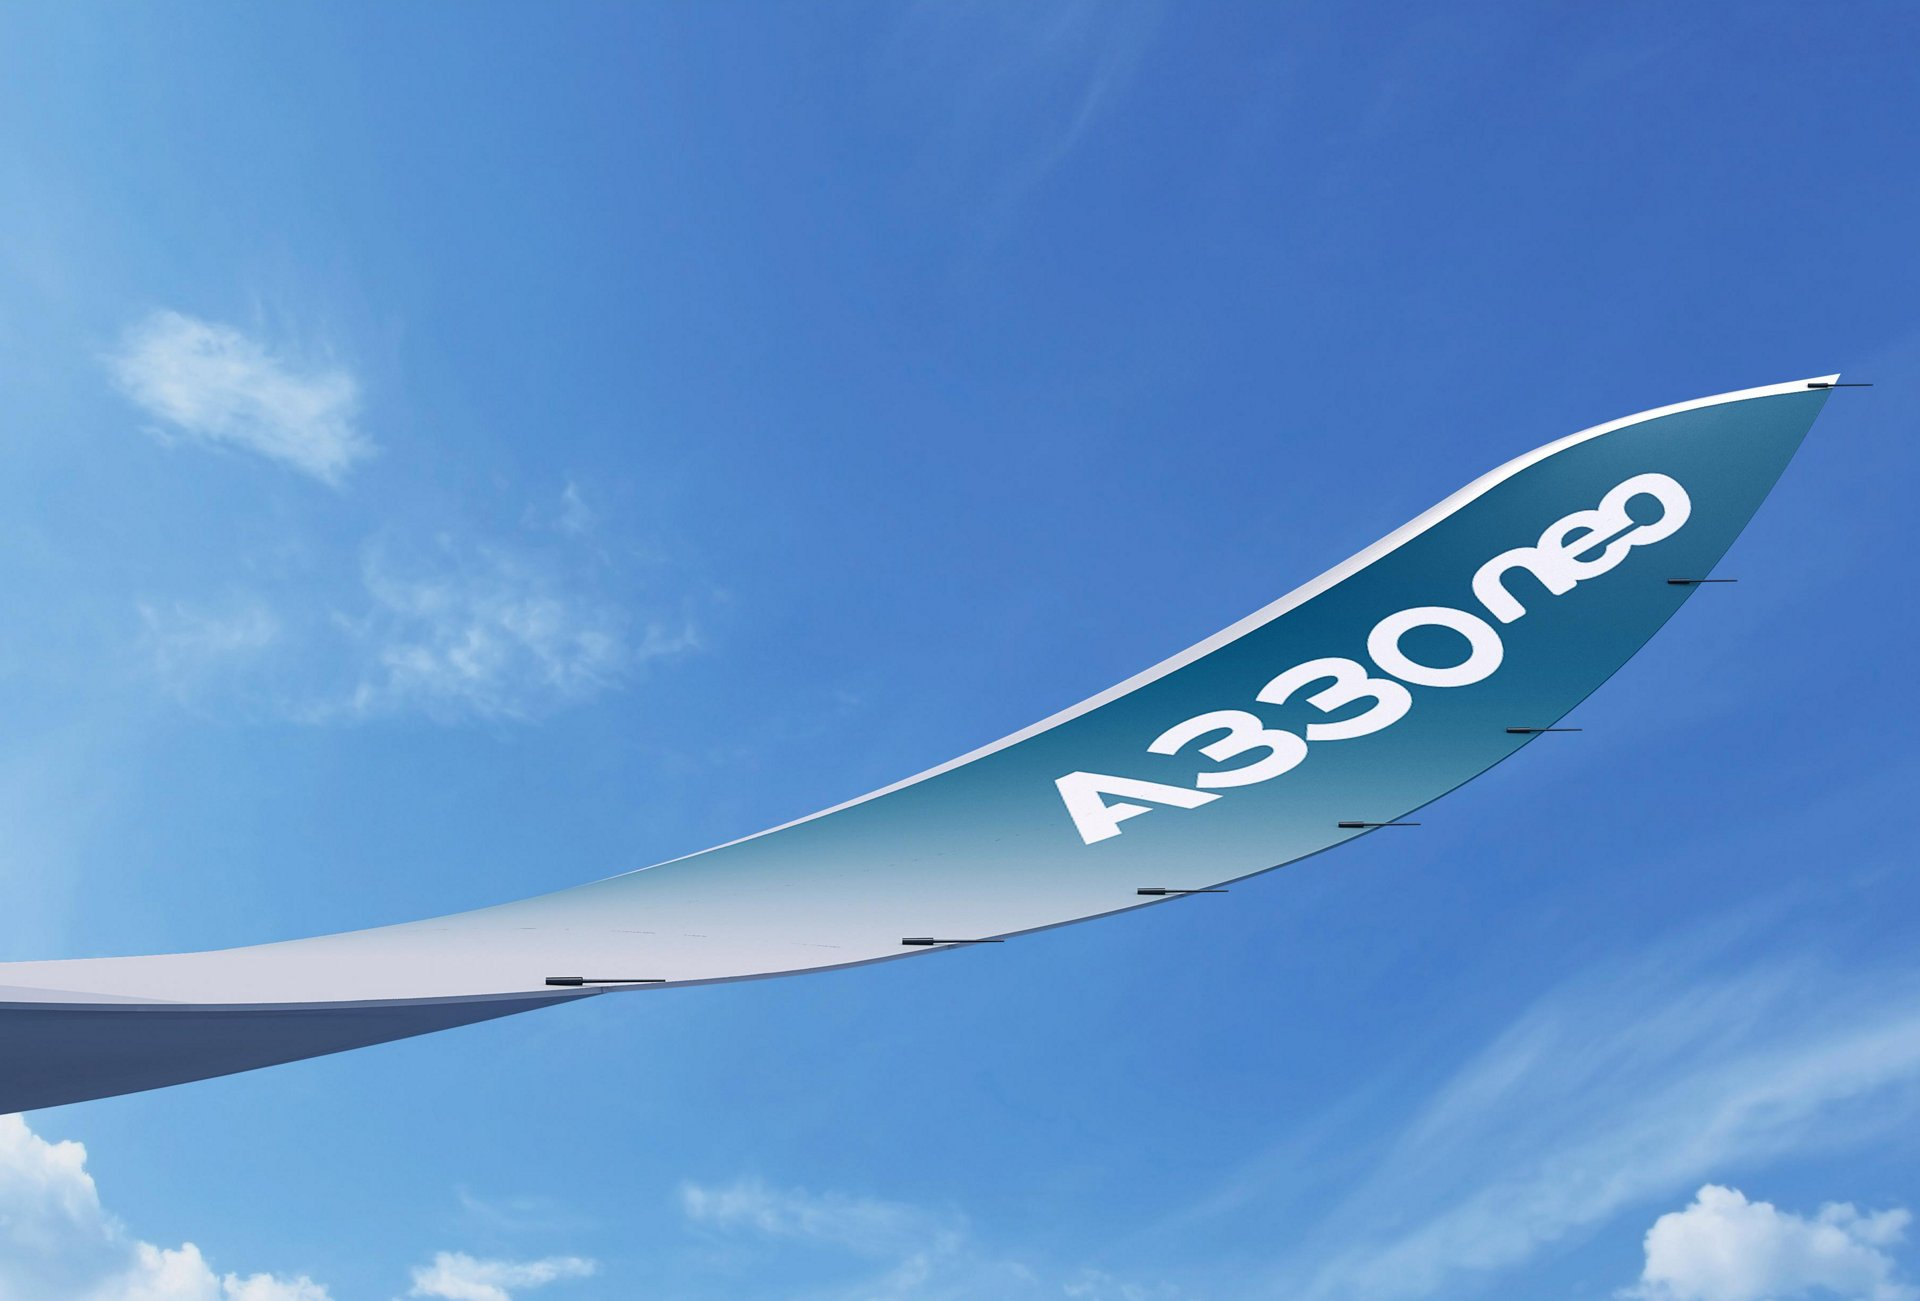 The A330neo's vertical wing-tip extension is an example of Airbus' efforts in biomimicry.